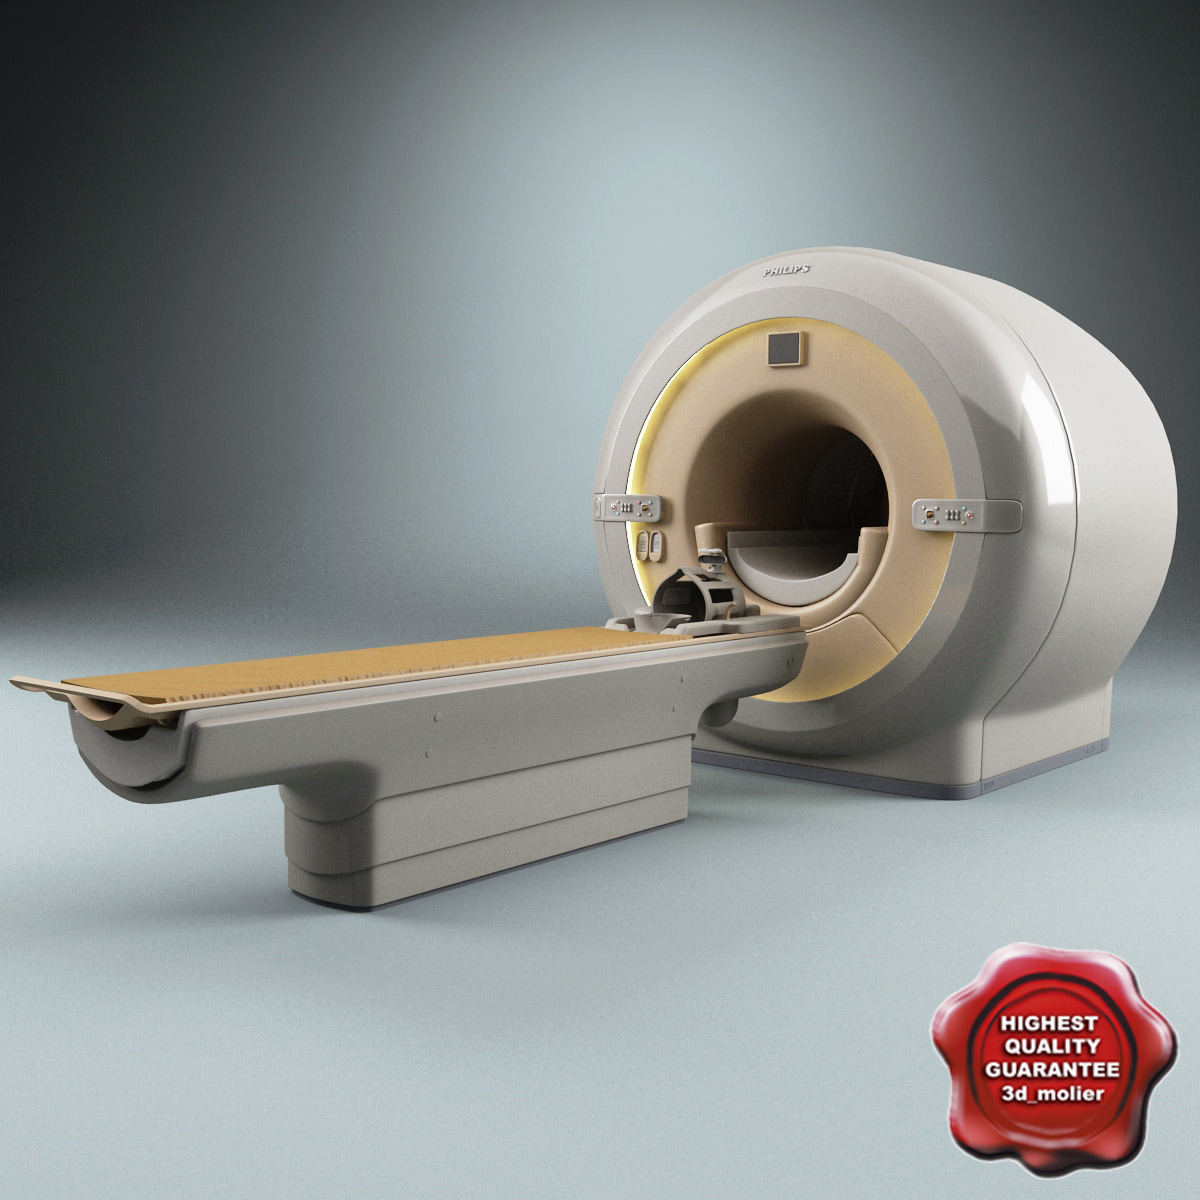 3ds max philips ct scanner mri